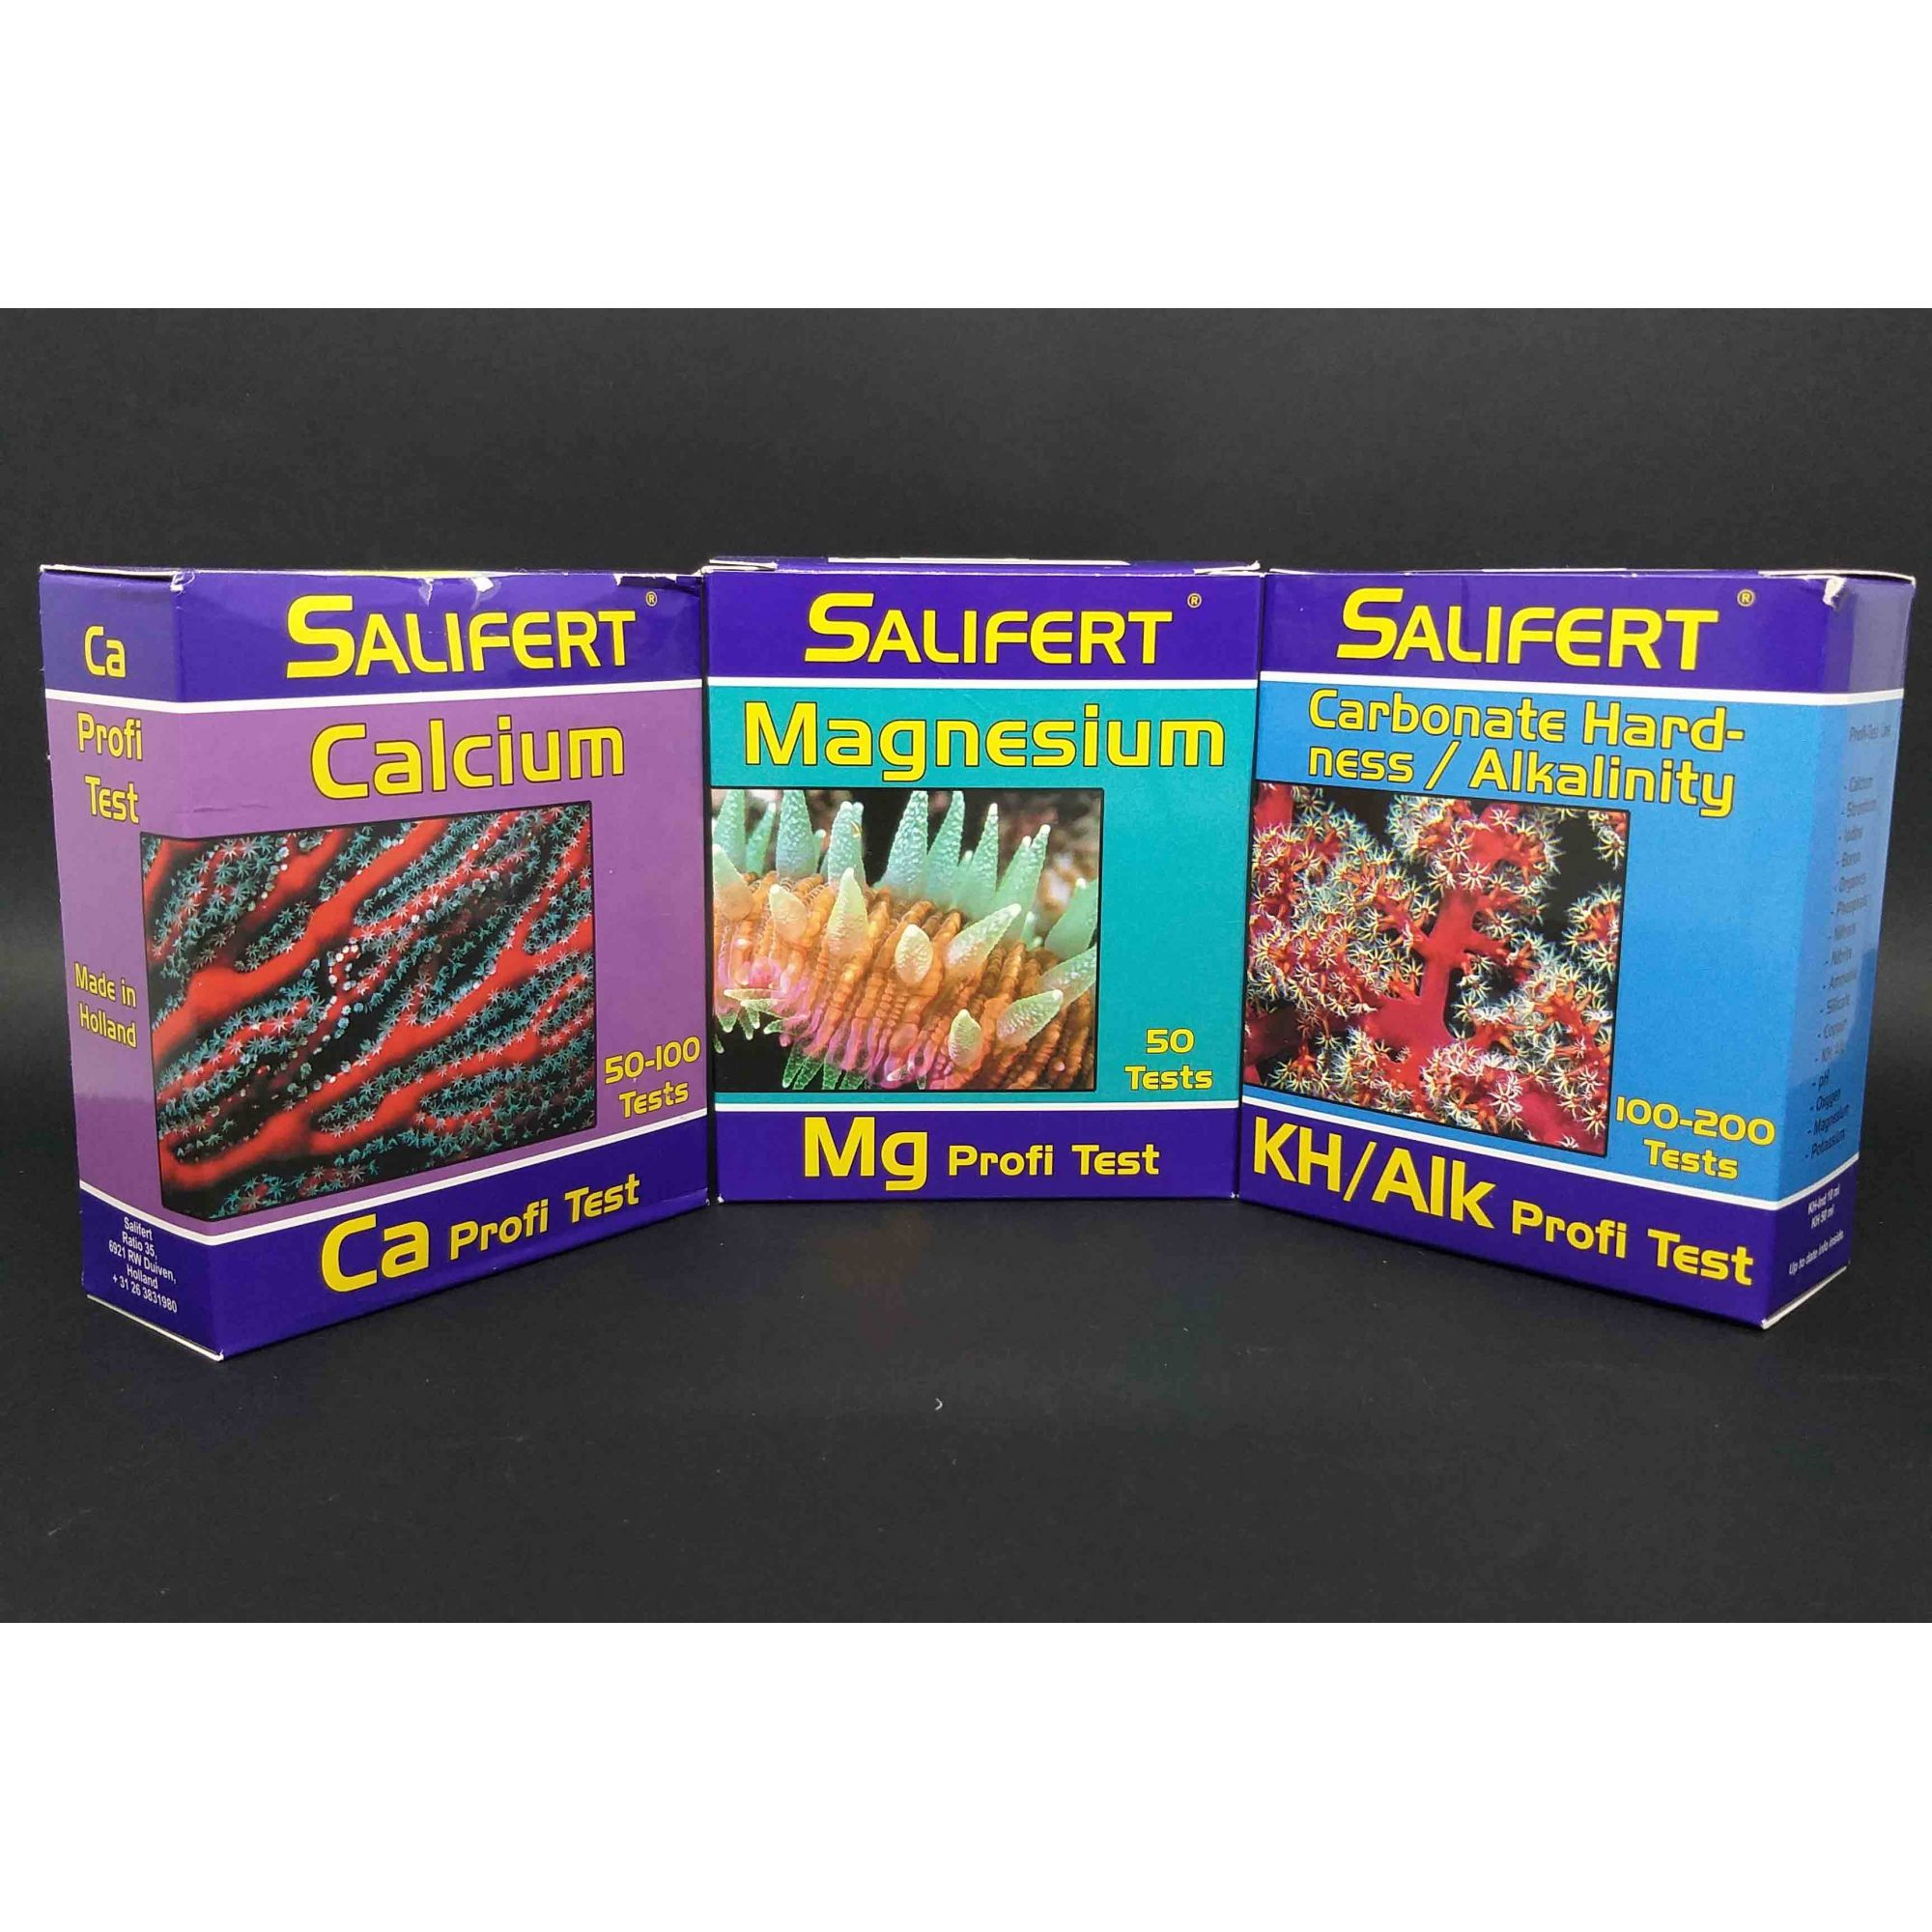 Salifert Teste Kit, Ca + Mg + KH